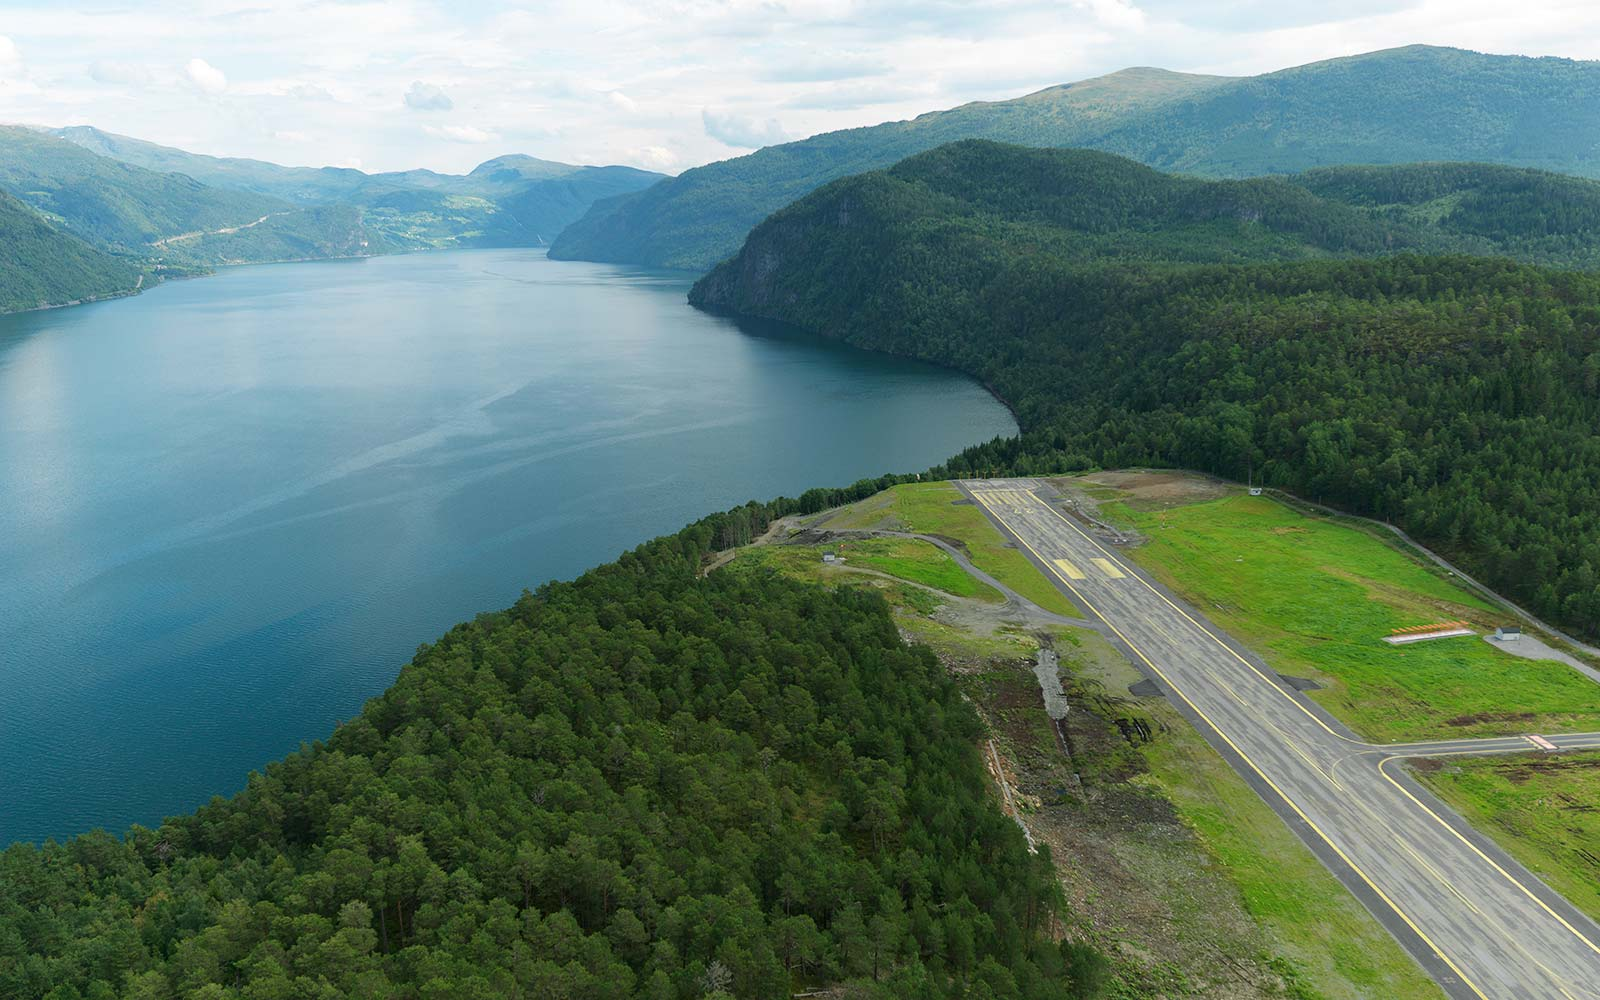 Sandane Airport, Norway